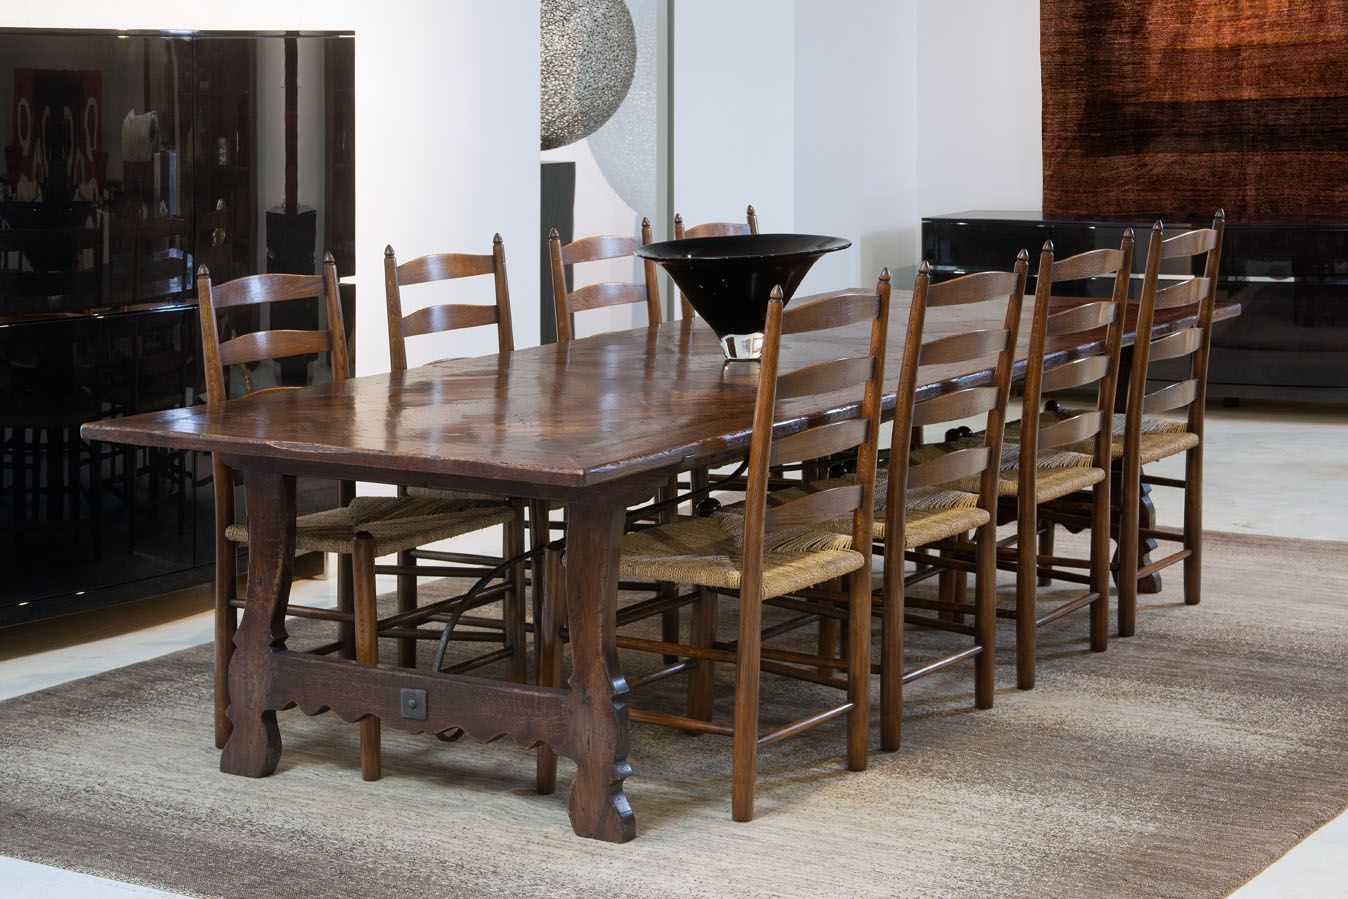 Ladderback Chairs With Spanish Parquetry Table French Oak Chairs